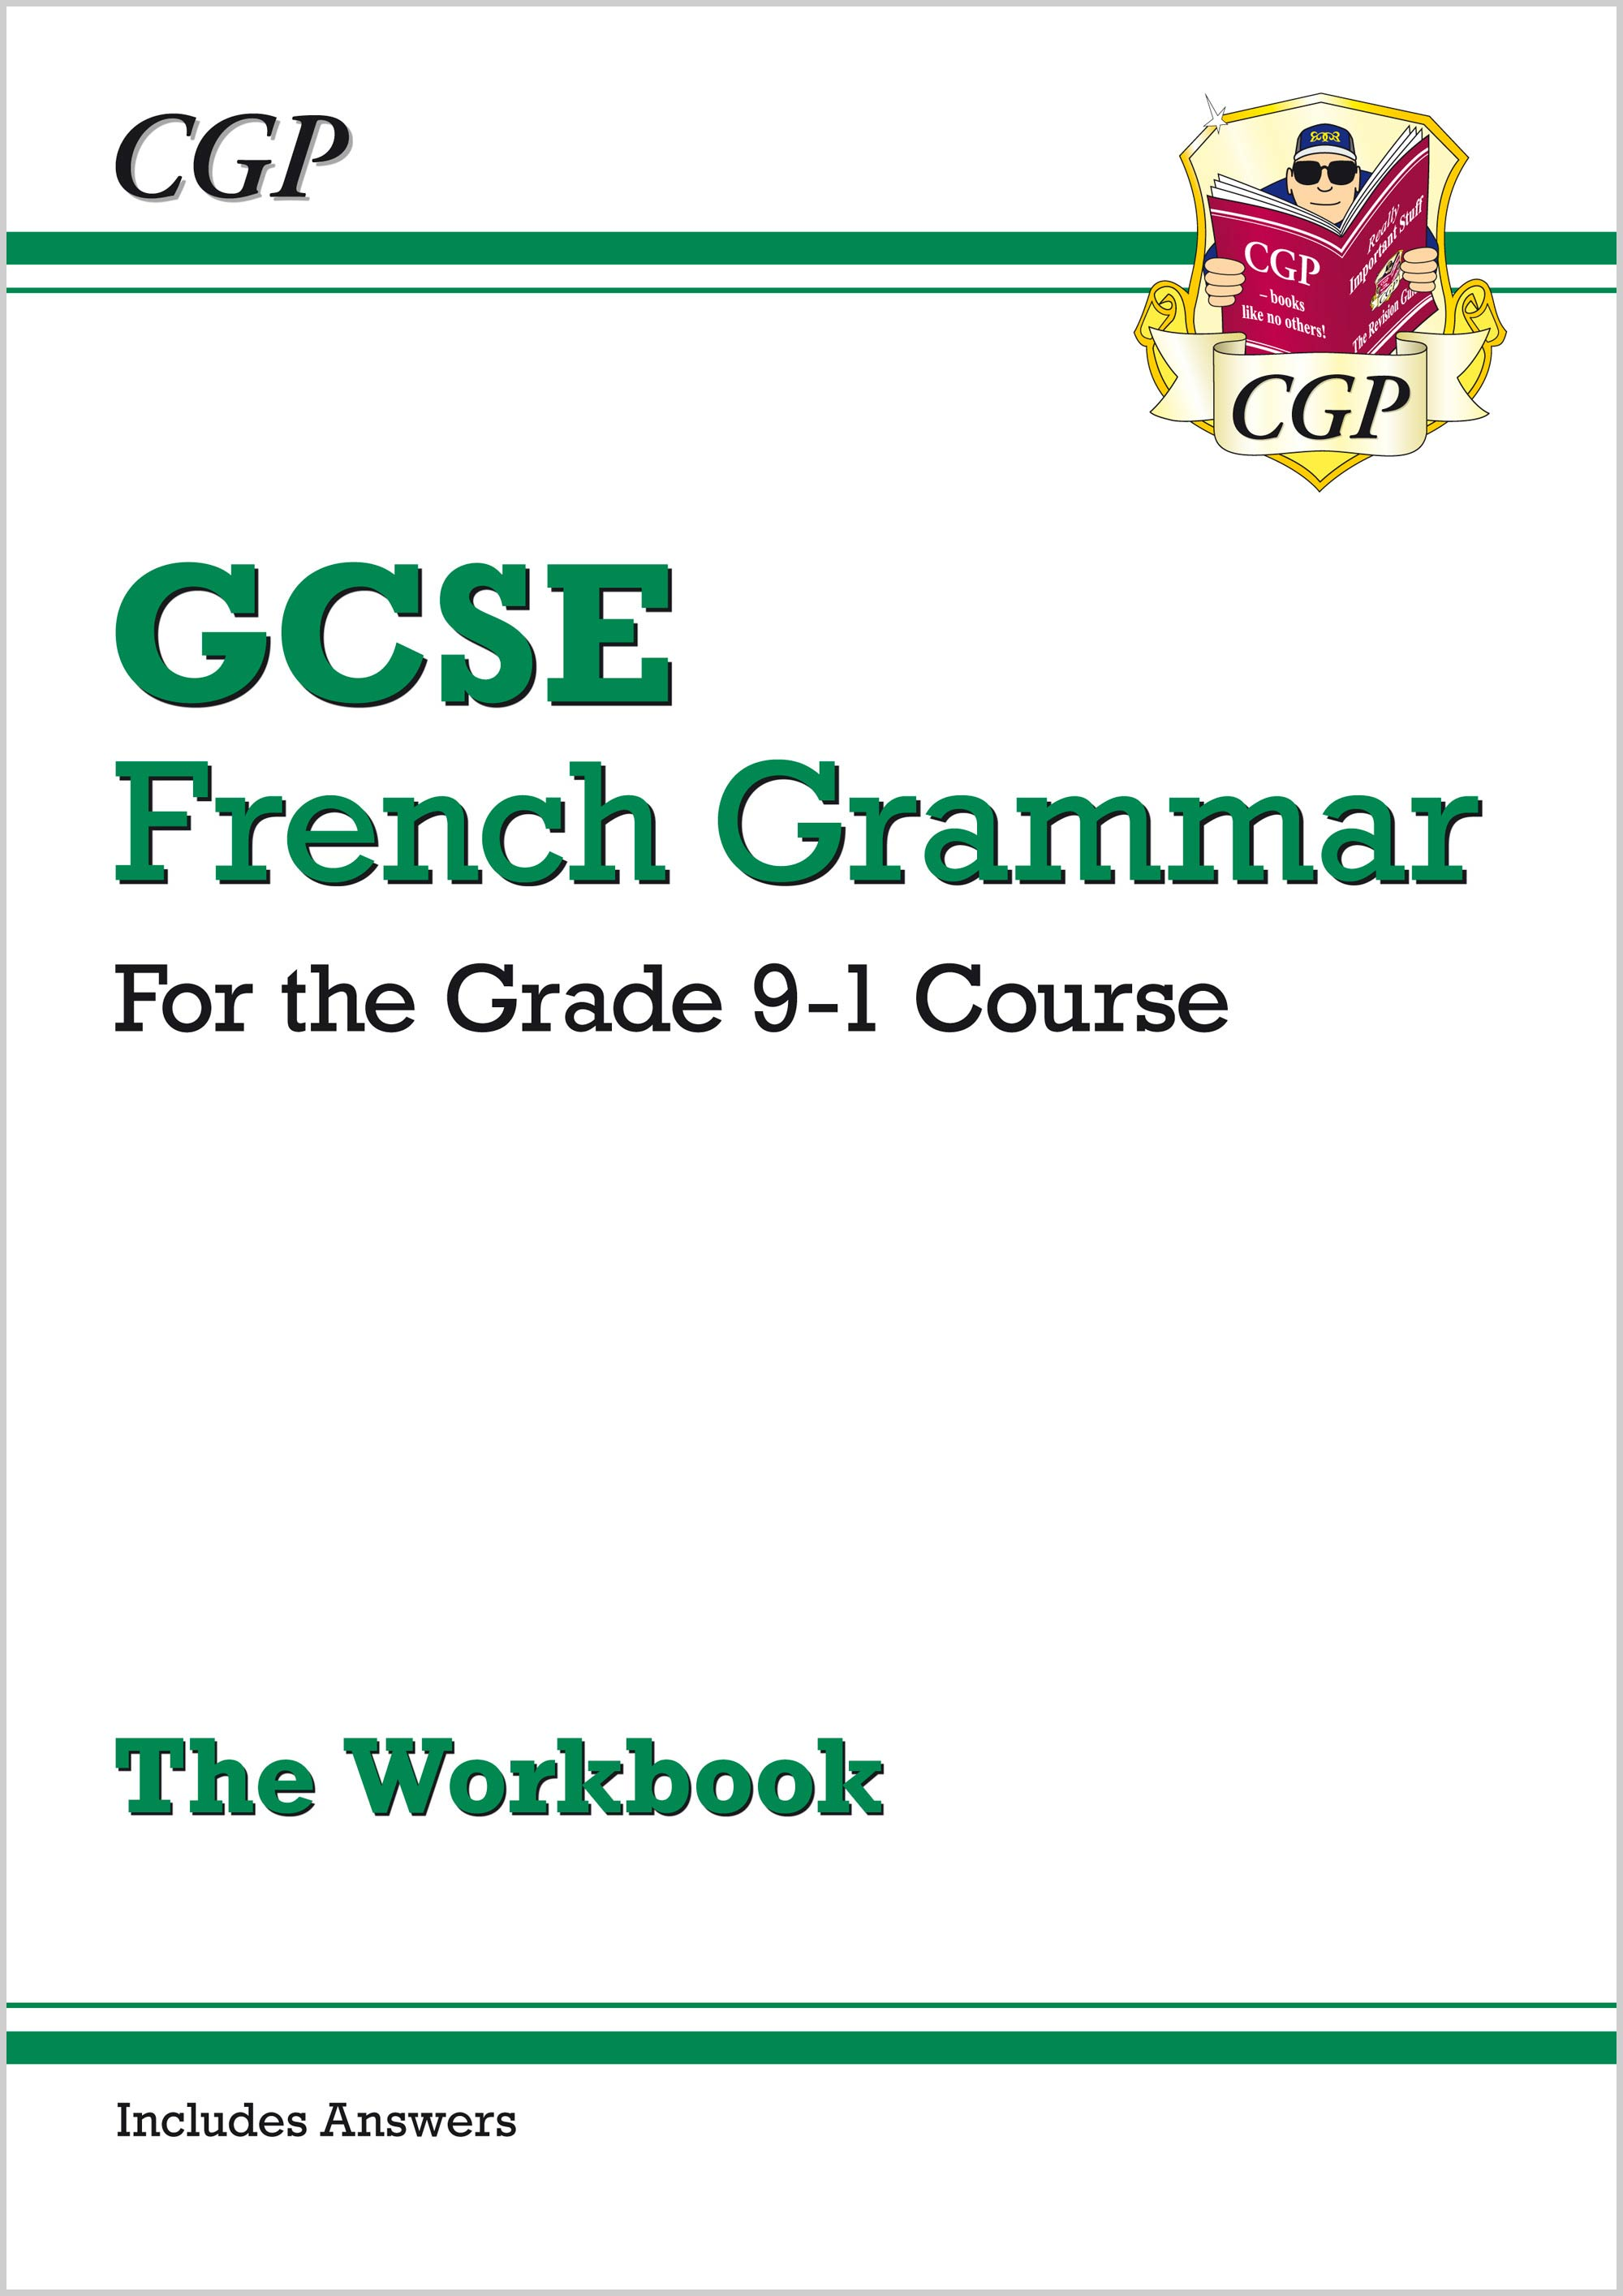 FGW41 - New GCSE French Grammar Workbook - for the Grade 9-1 Course (includes Answers)